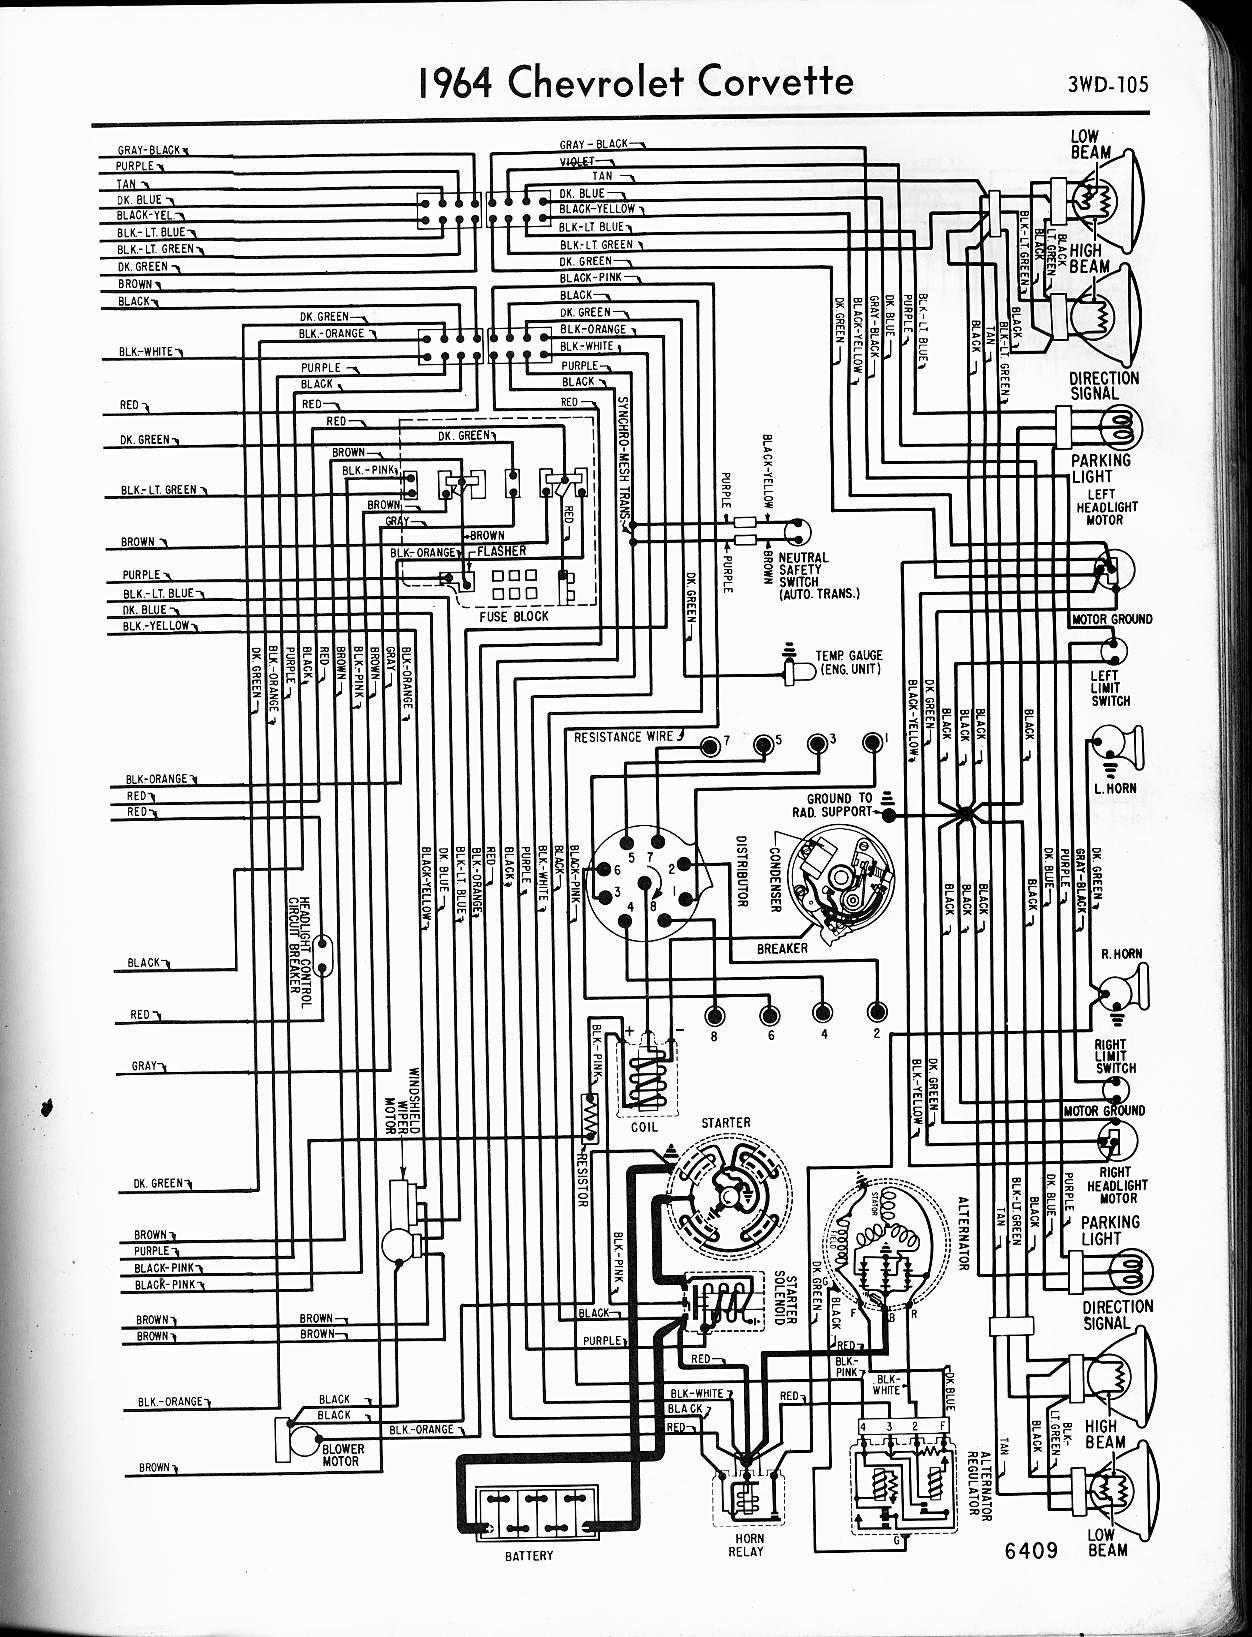 Fine 57 Chevy Wiring Diagram Image - The Wire - magnox.info